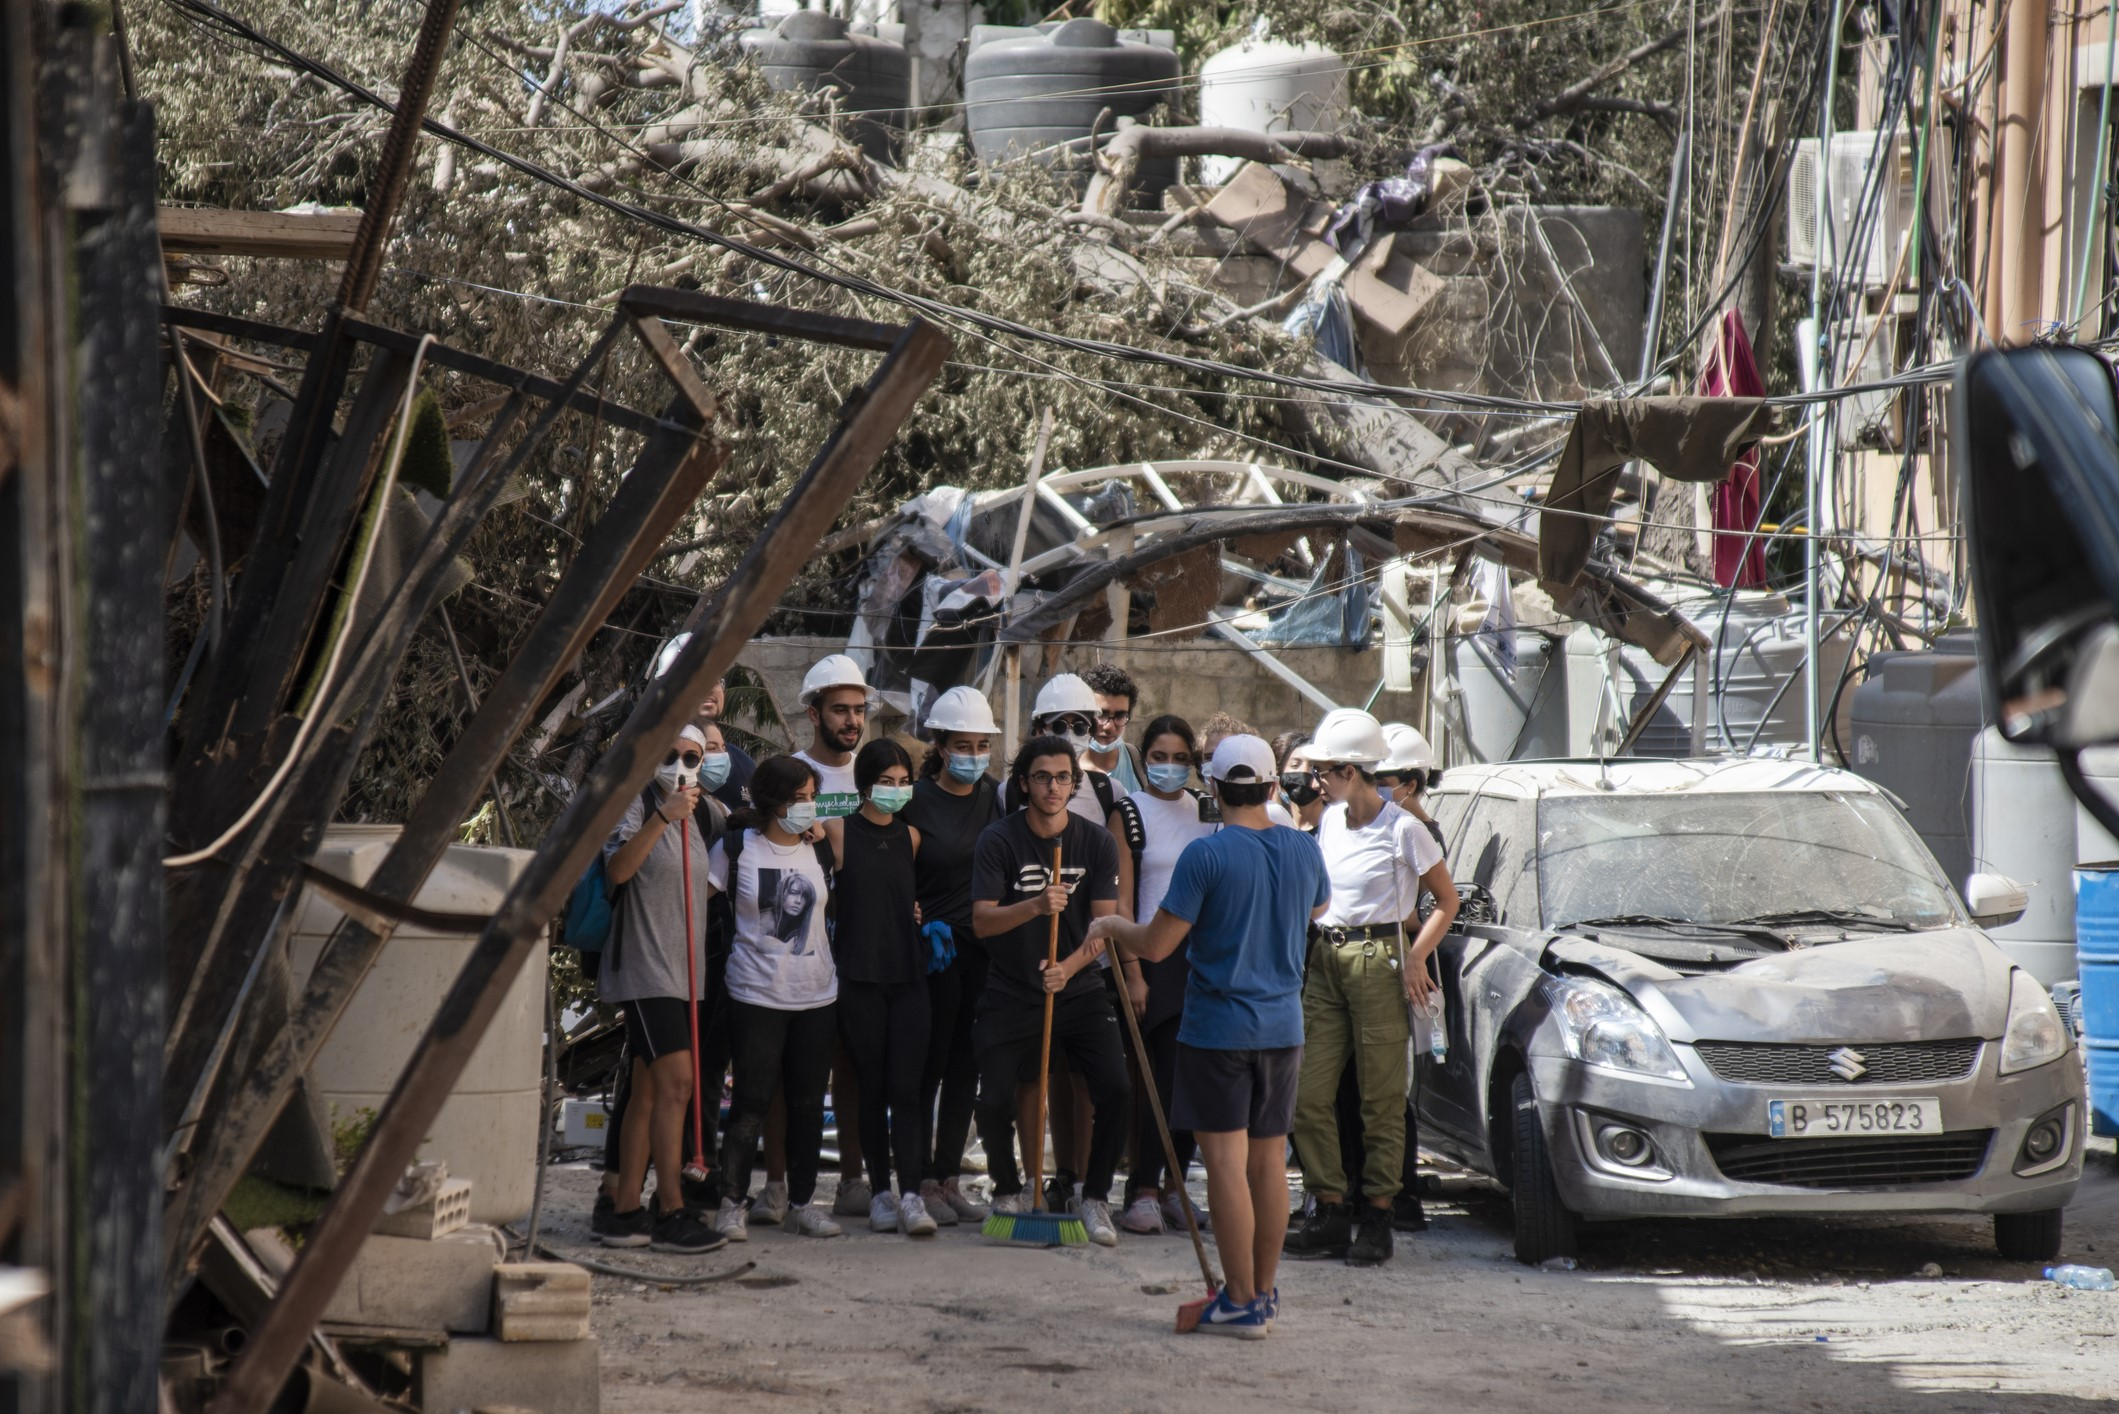 During the massive explosion last month, thousands of people in Beirut lost loved ones, their homes, their livelihoods and all sense of security.